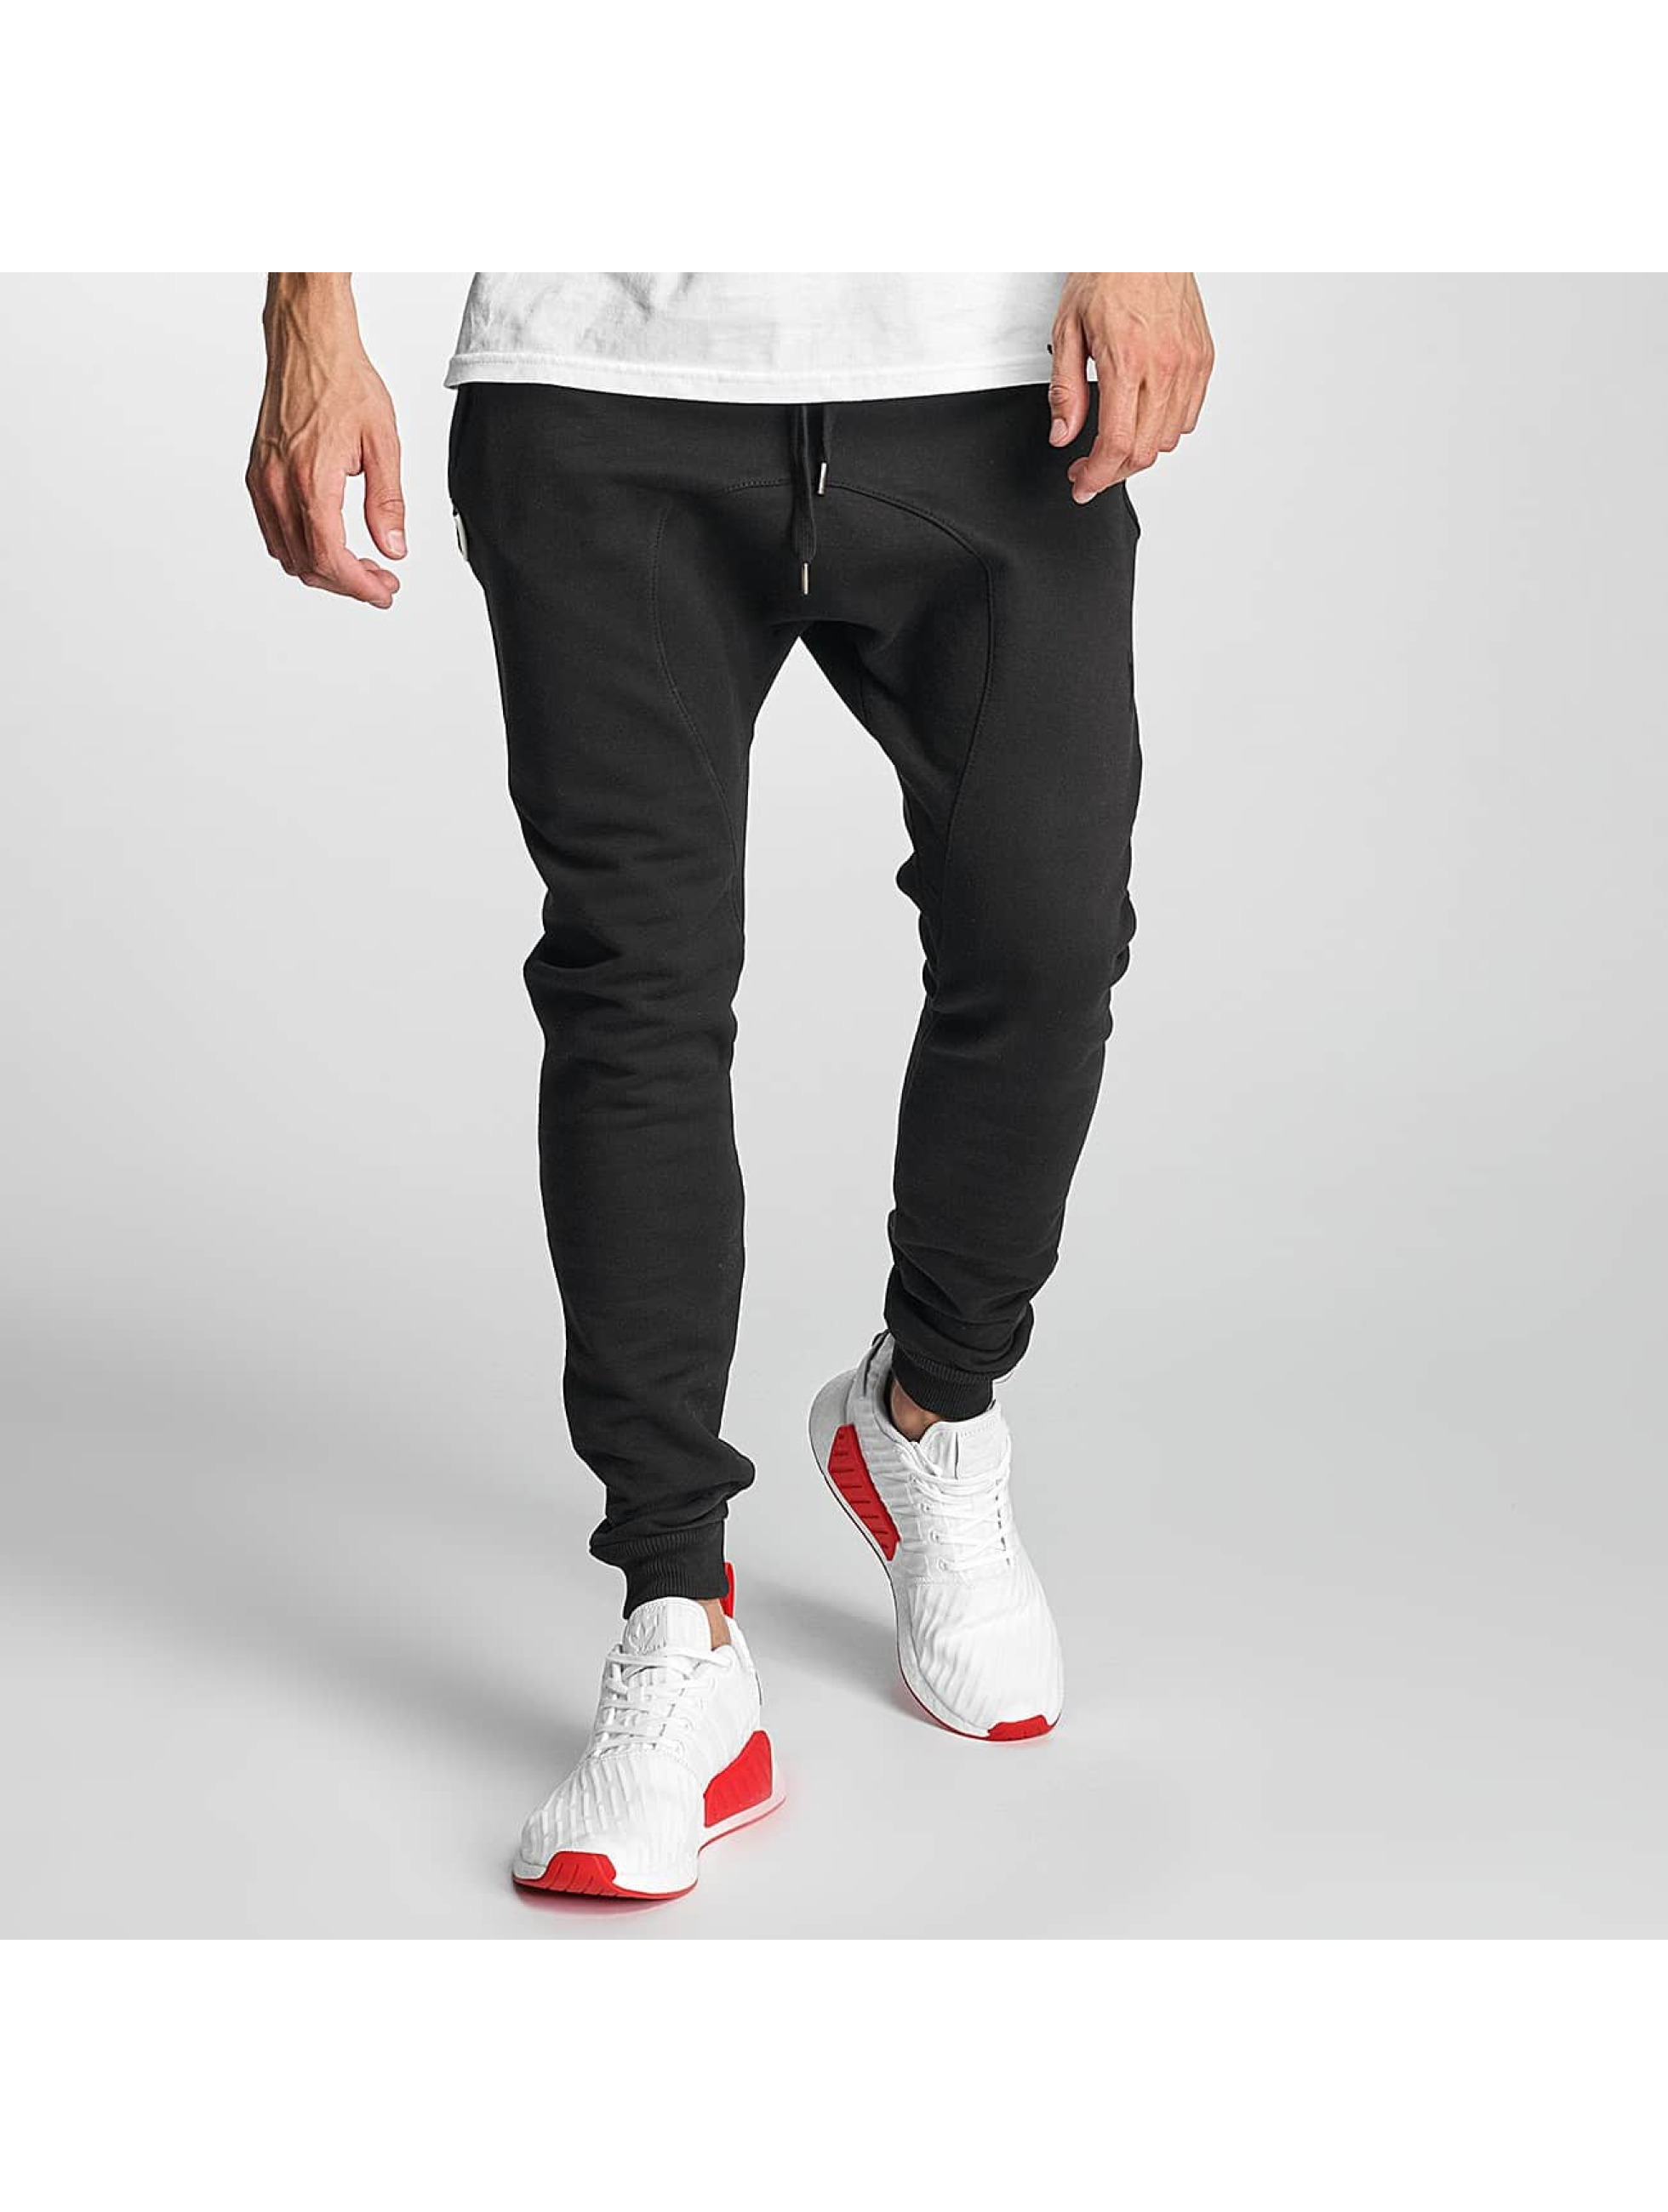 Cavallo de Ferro / Sweat Pant Streets in black 3XL